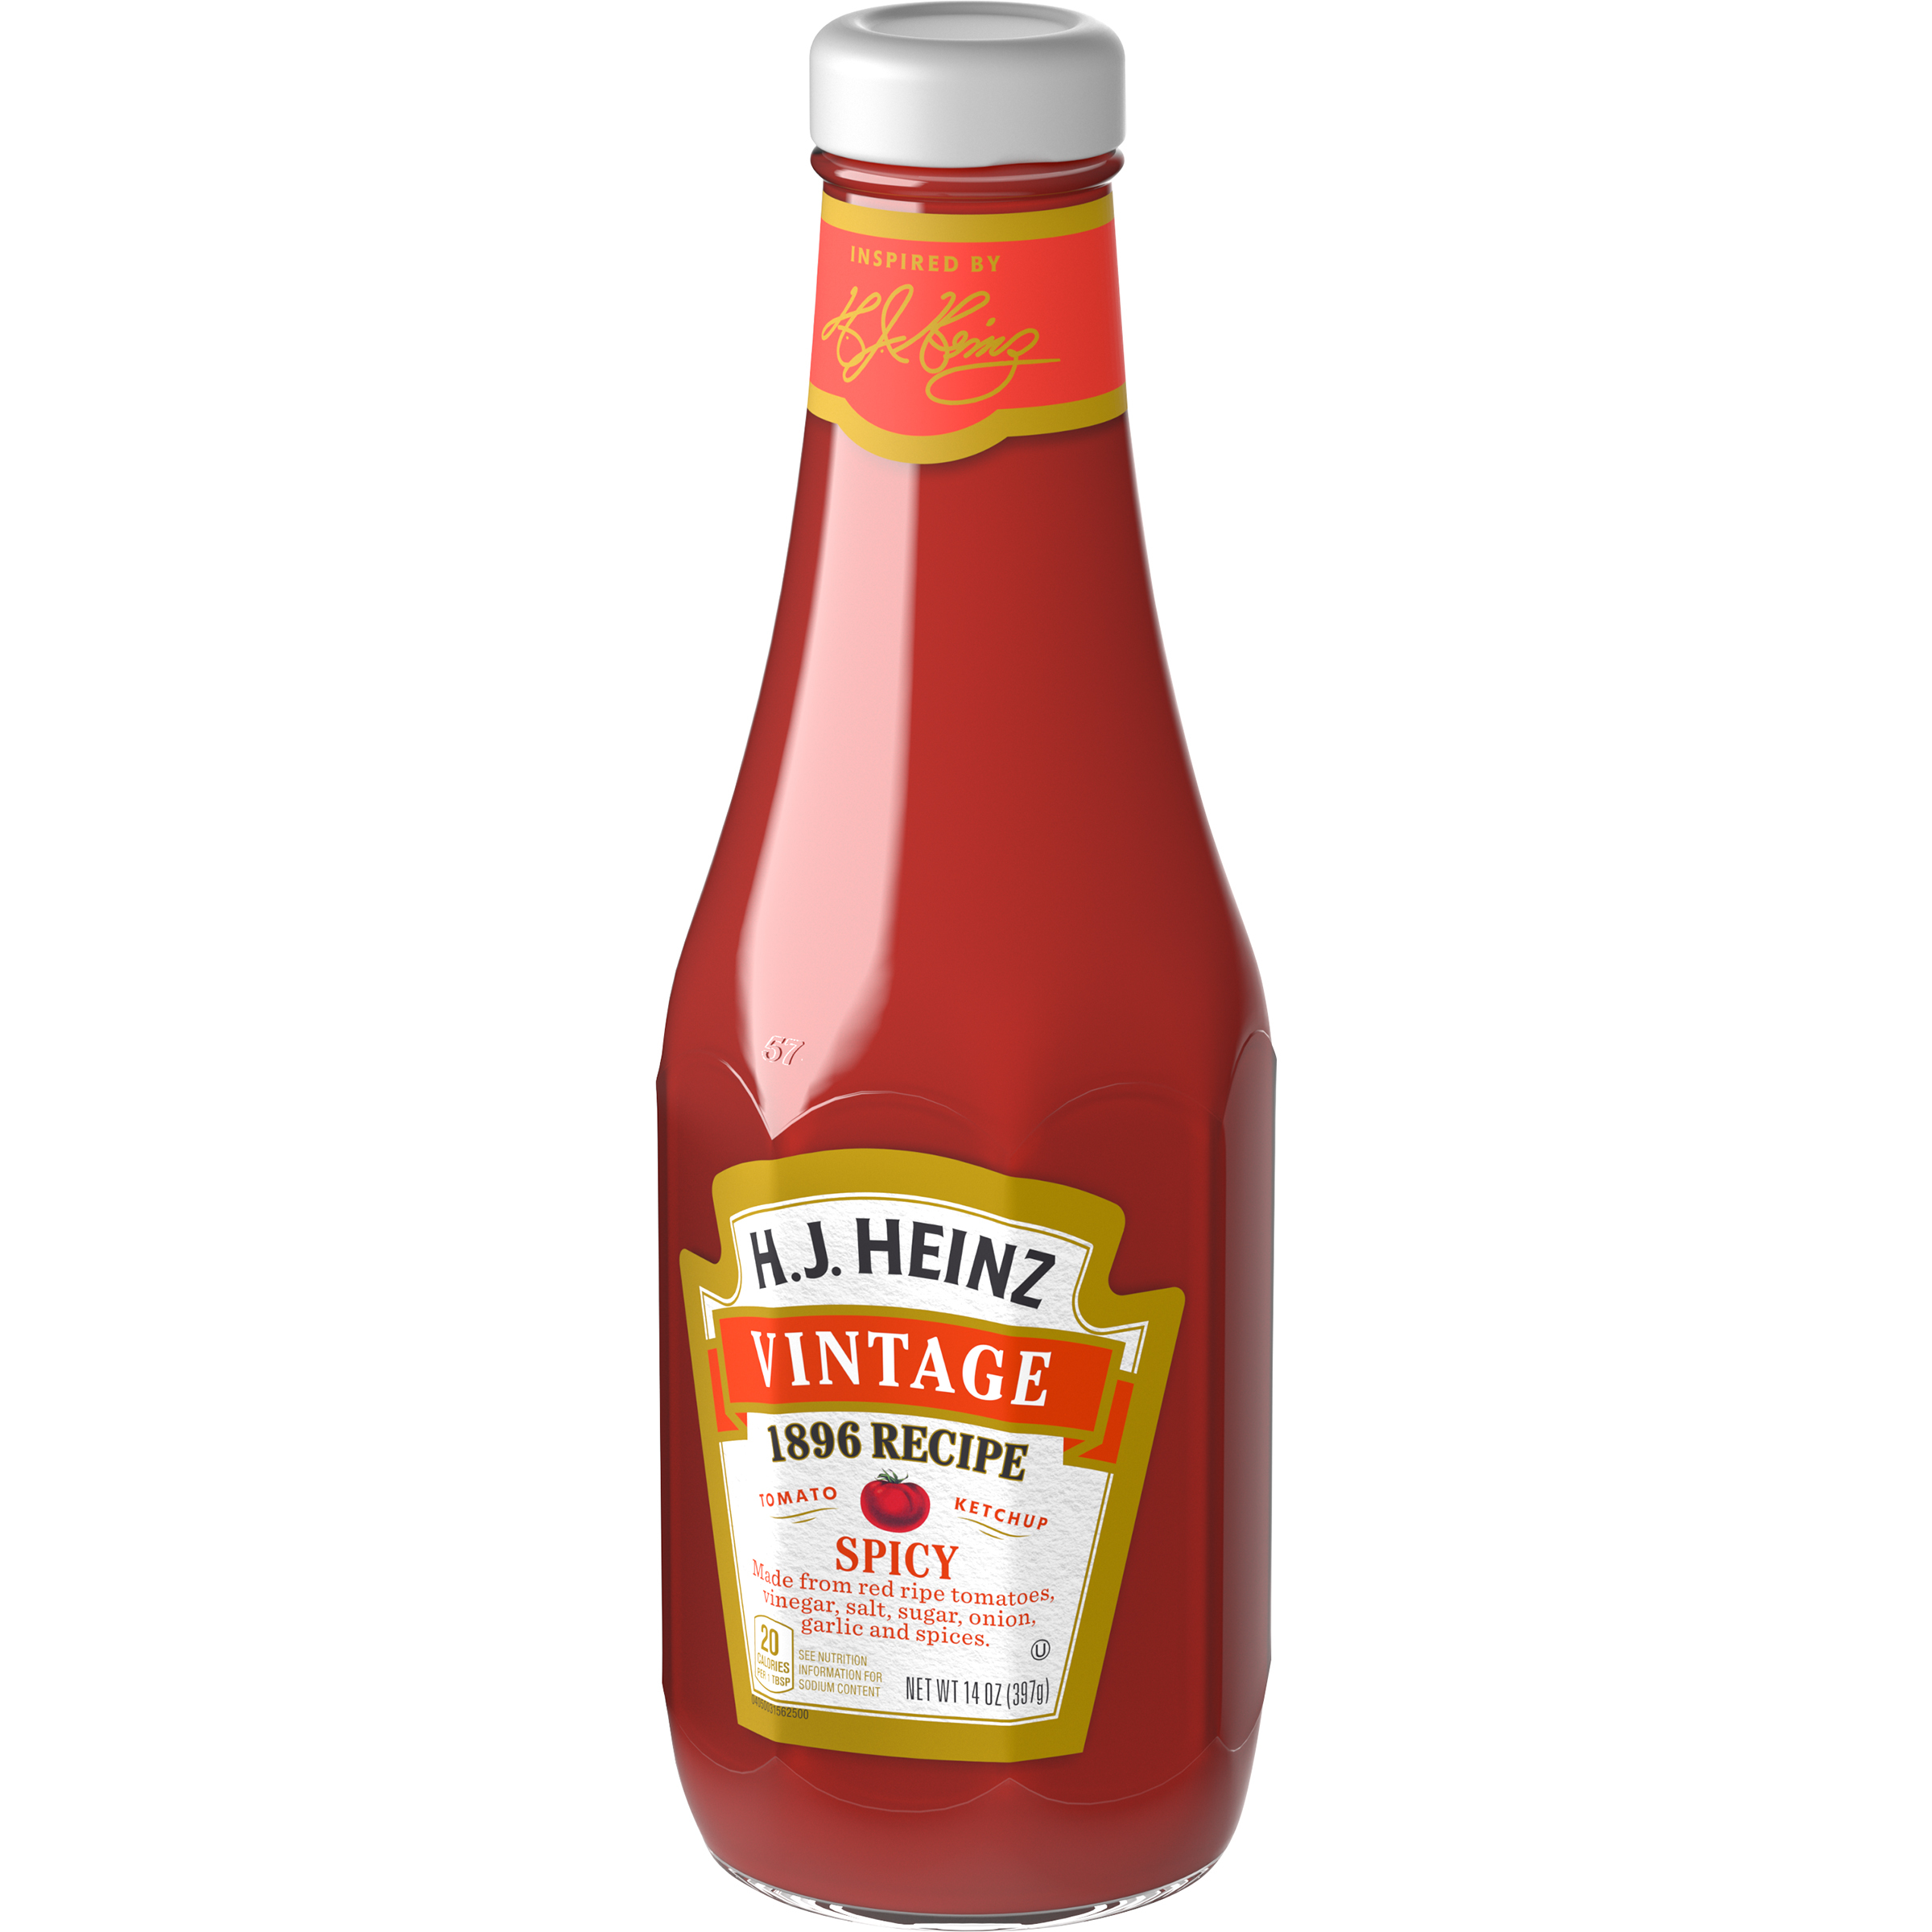 Vintage 1896 Spicy Ketchup (14 oz. glass bottle)